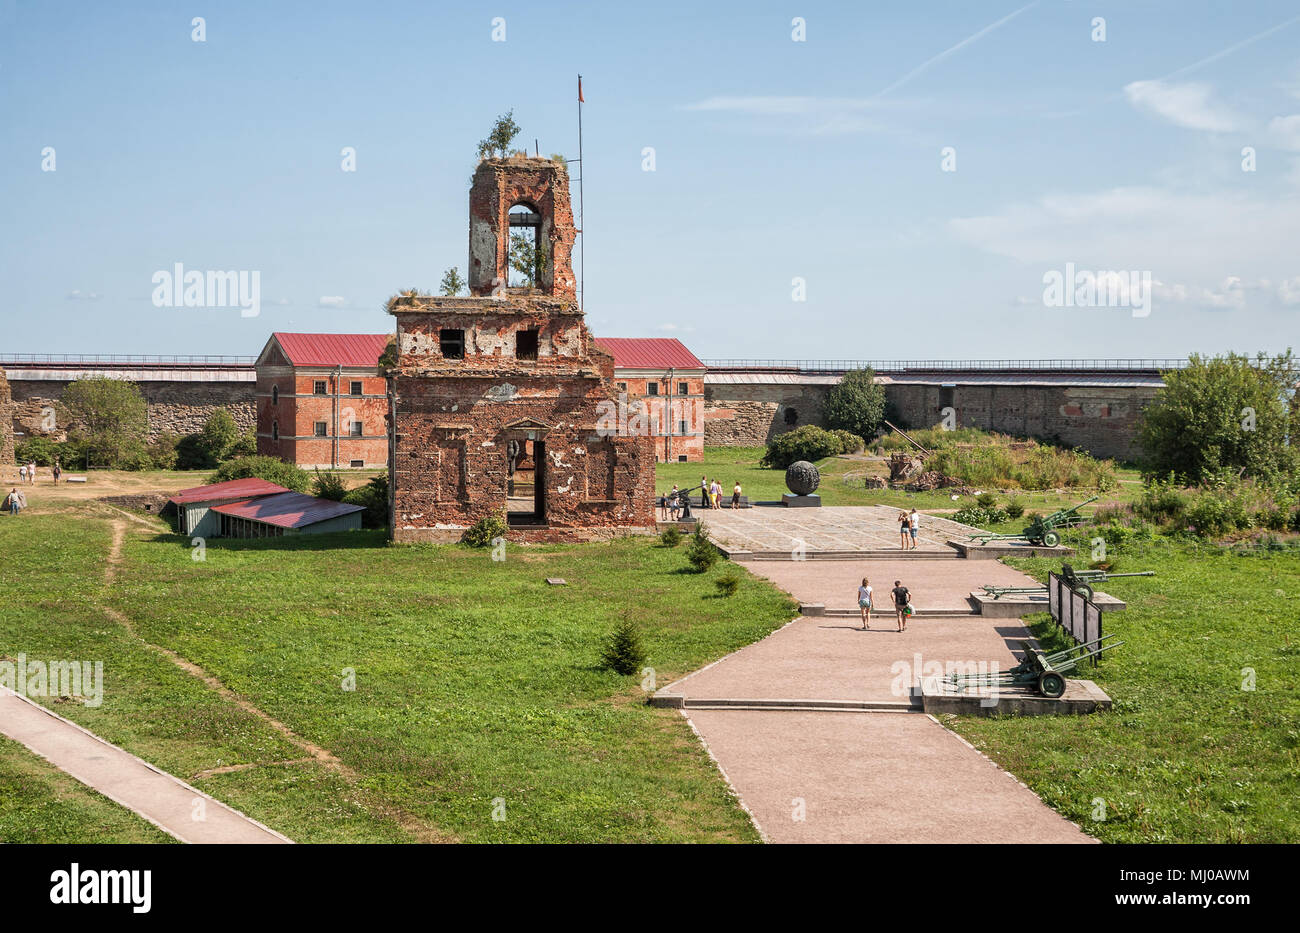 SHLISSELBURG, RUSSIA - AUGUST 02, 2014: People visit fortress Oreshek, monument of the Great Patriotic War - Stock Image